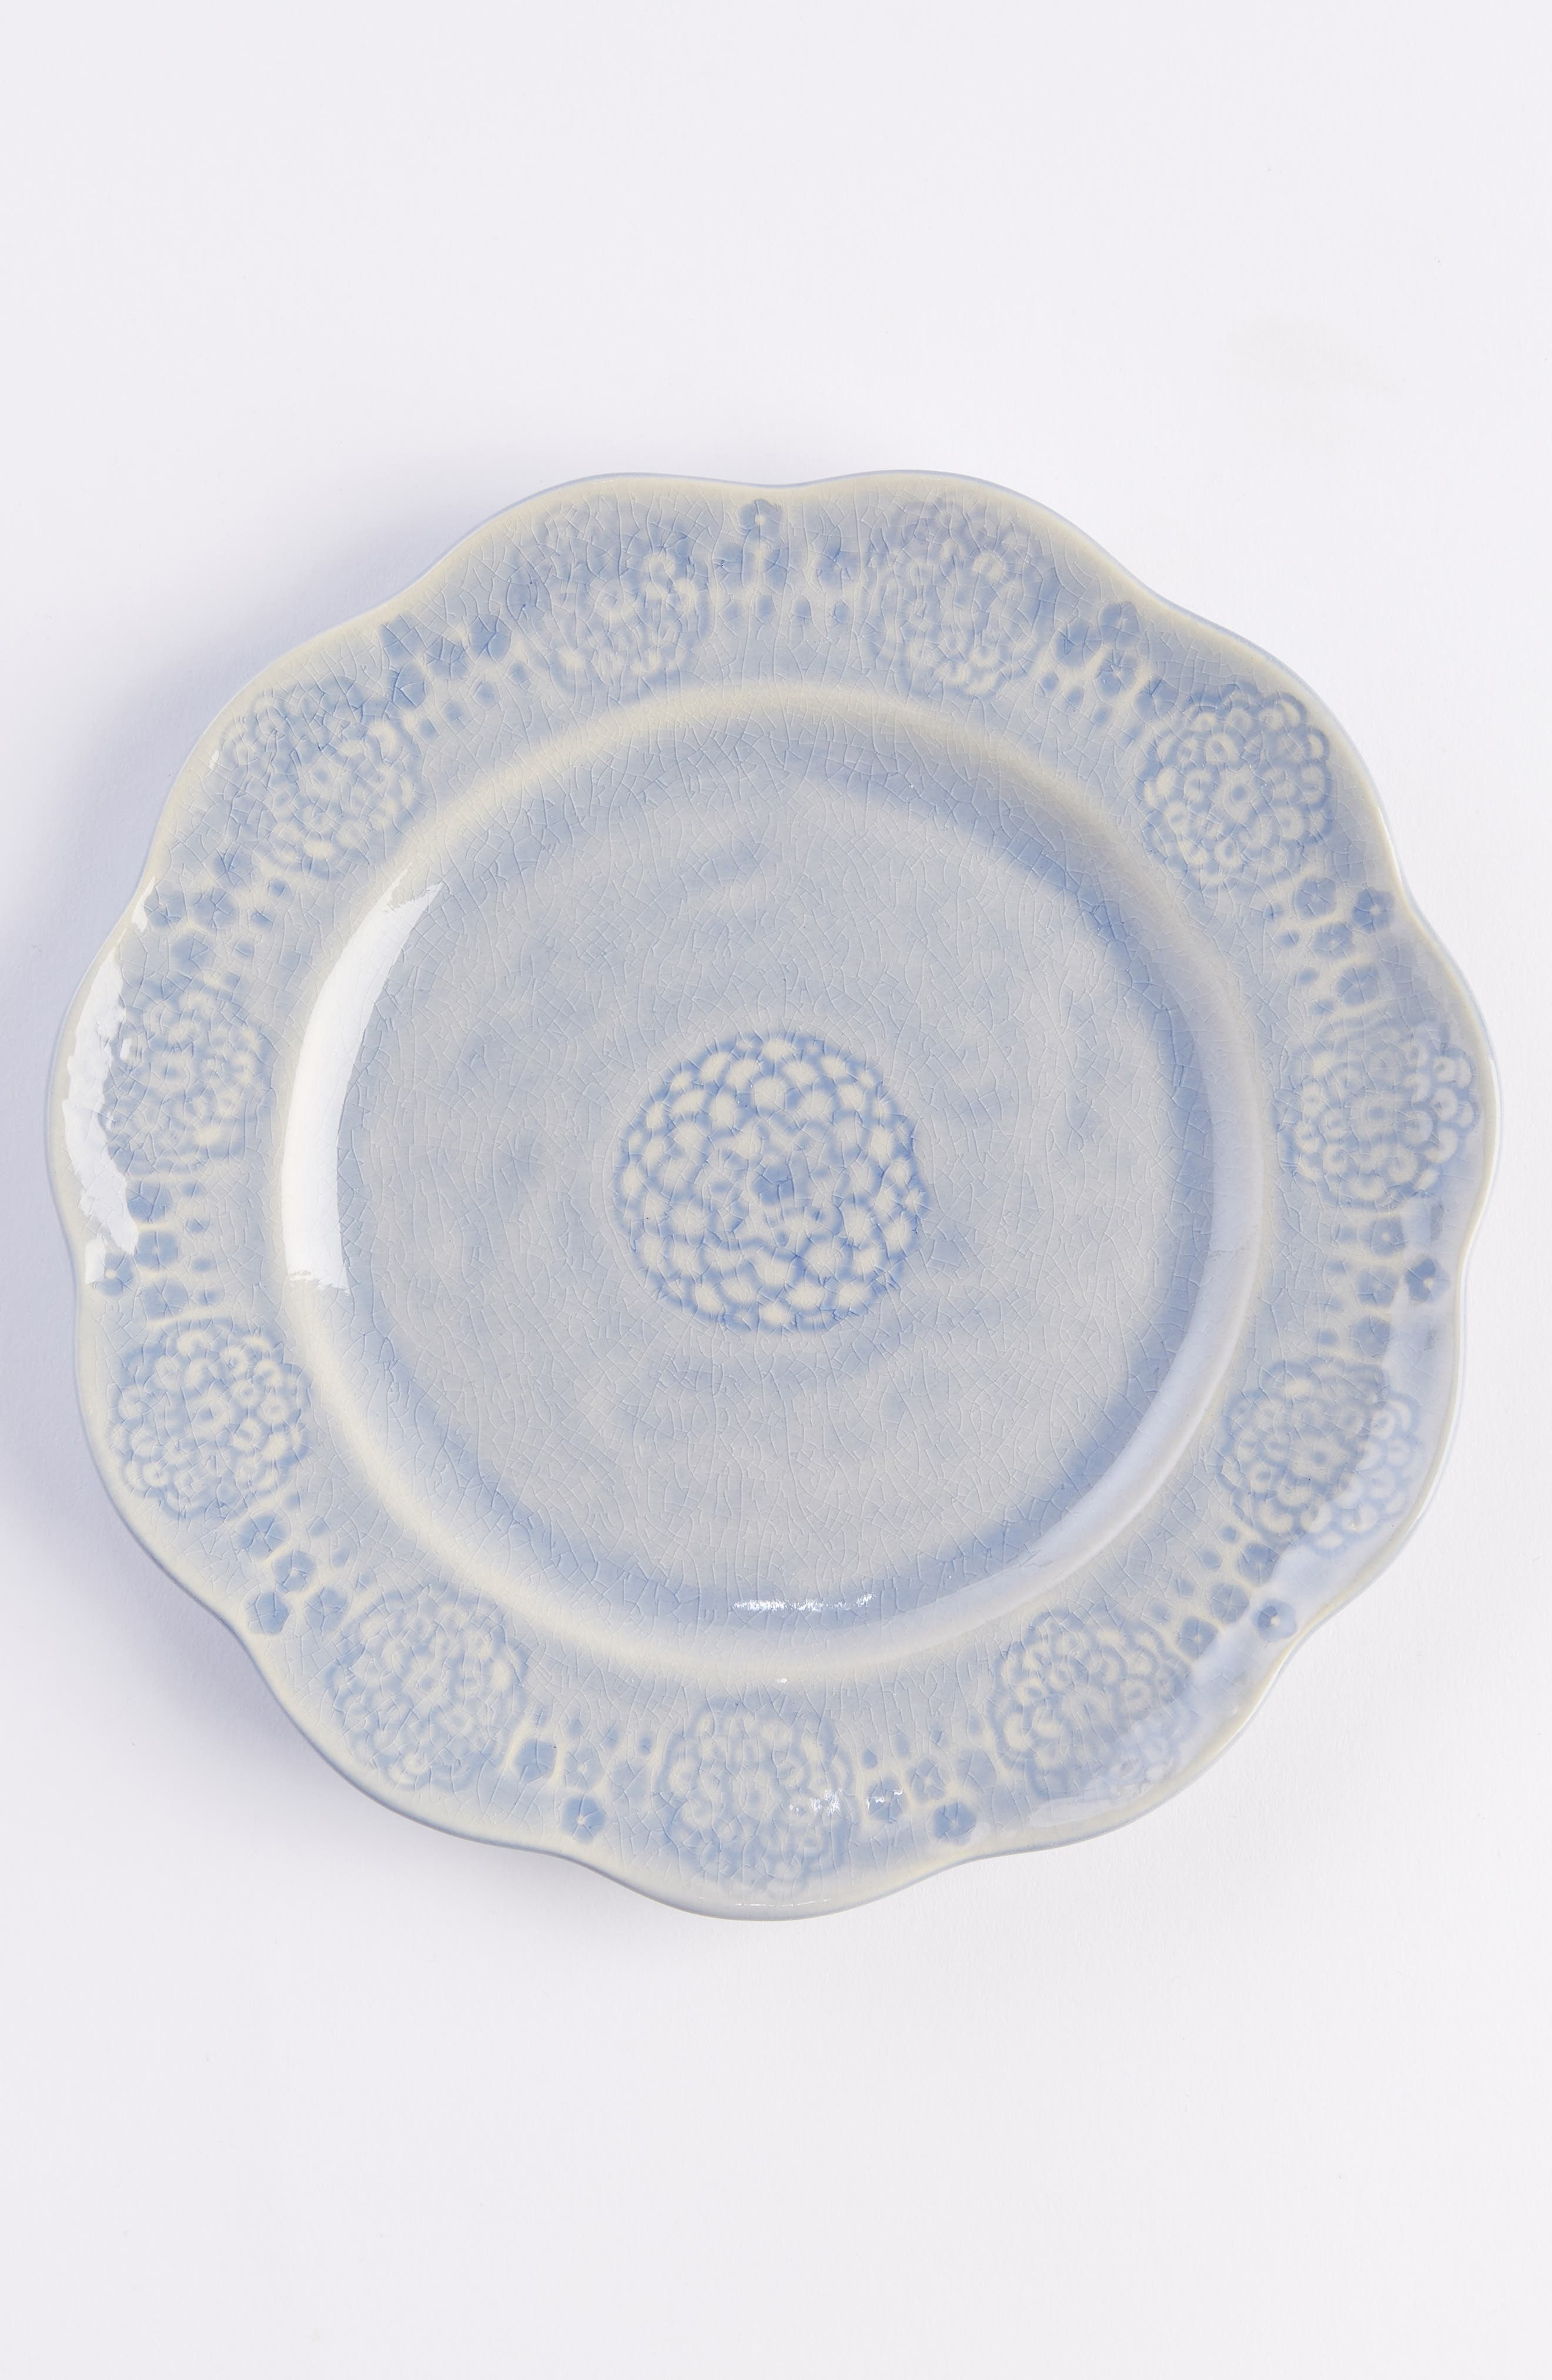 ANTHROPOLOGIE,                             Veru Side Plate,                             Main thumbnail 1, color,                             PERI